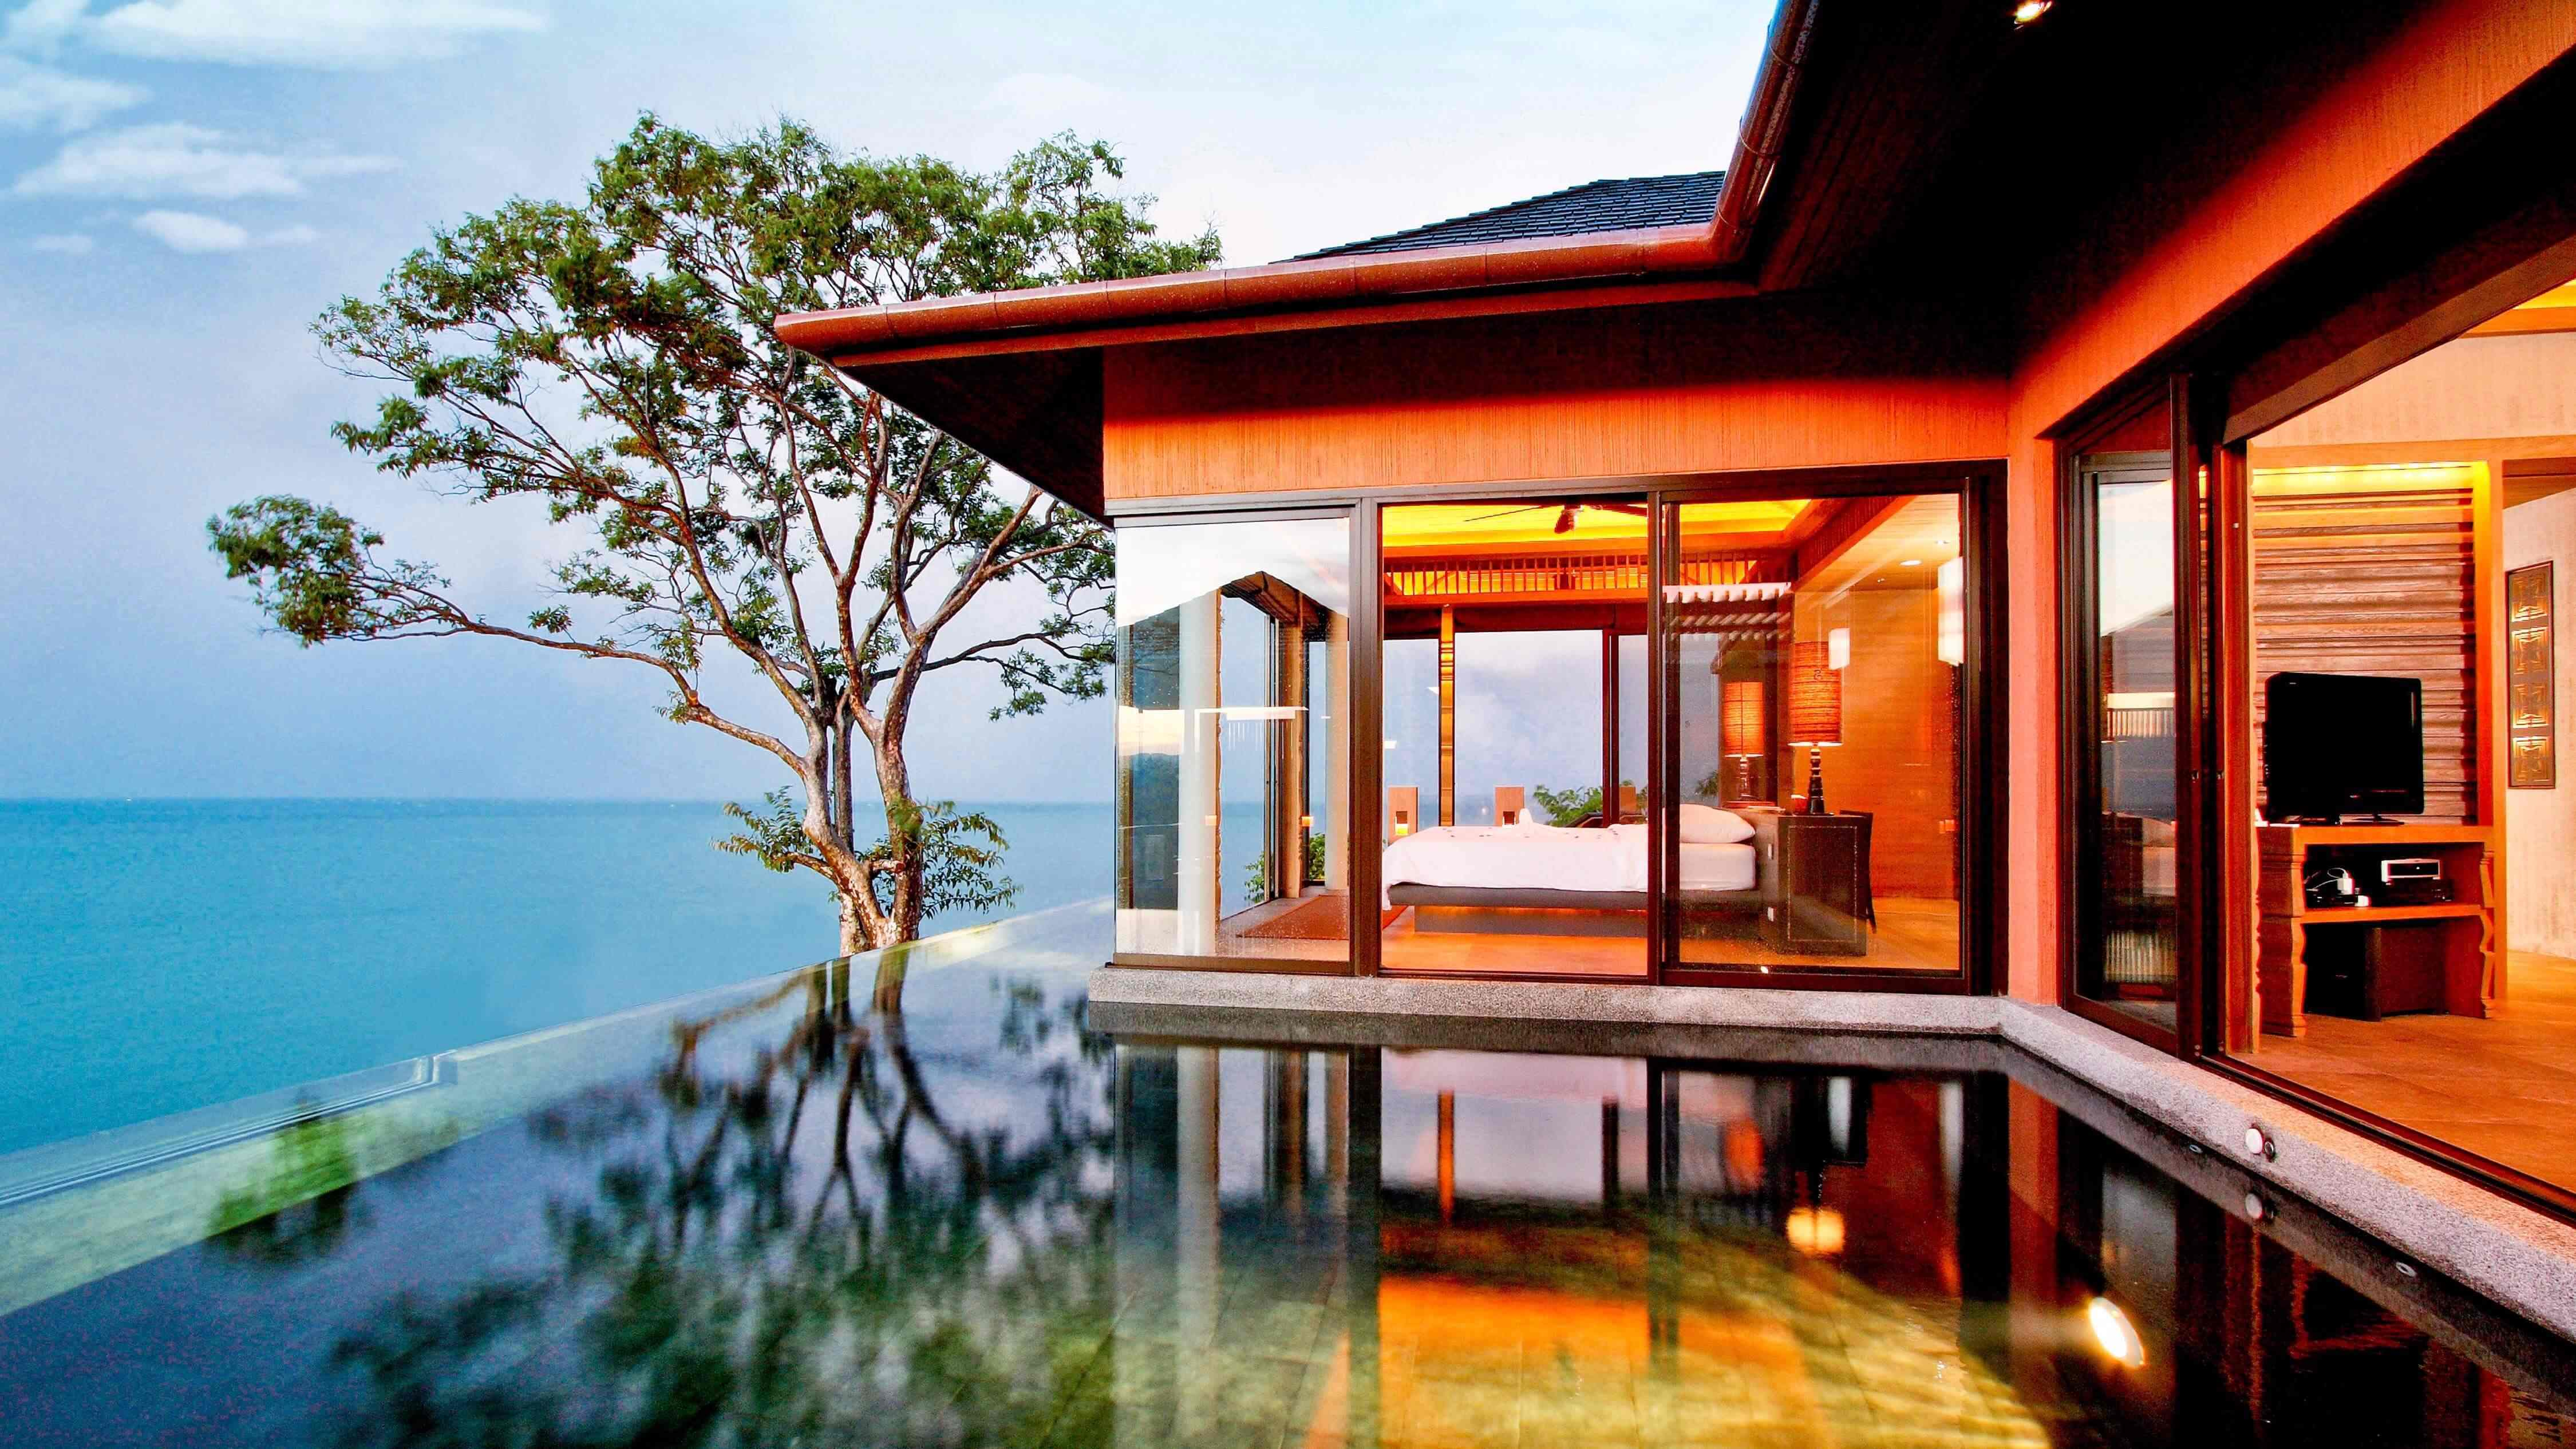 Phuket Properties Offering Some of The Best Luxuries And Comforts in South East Asia